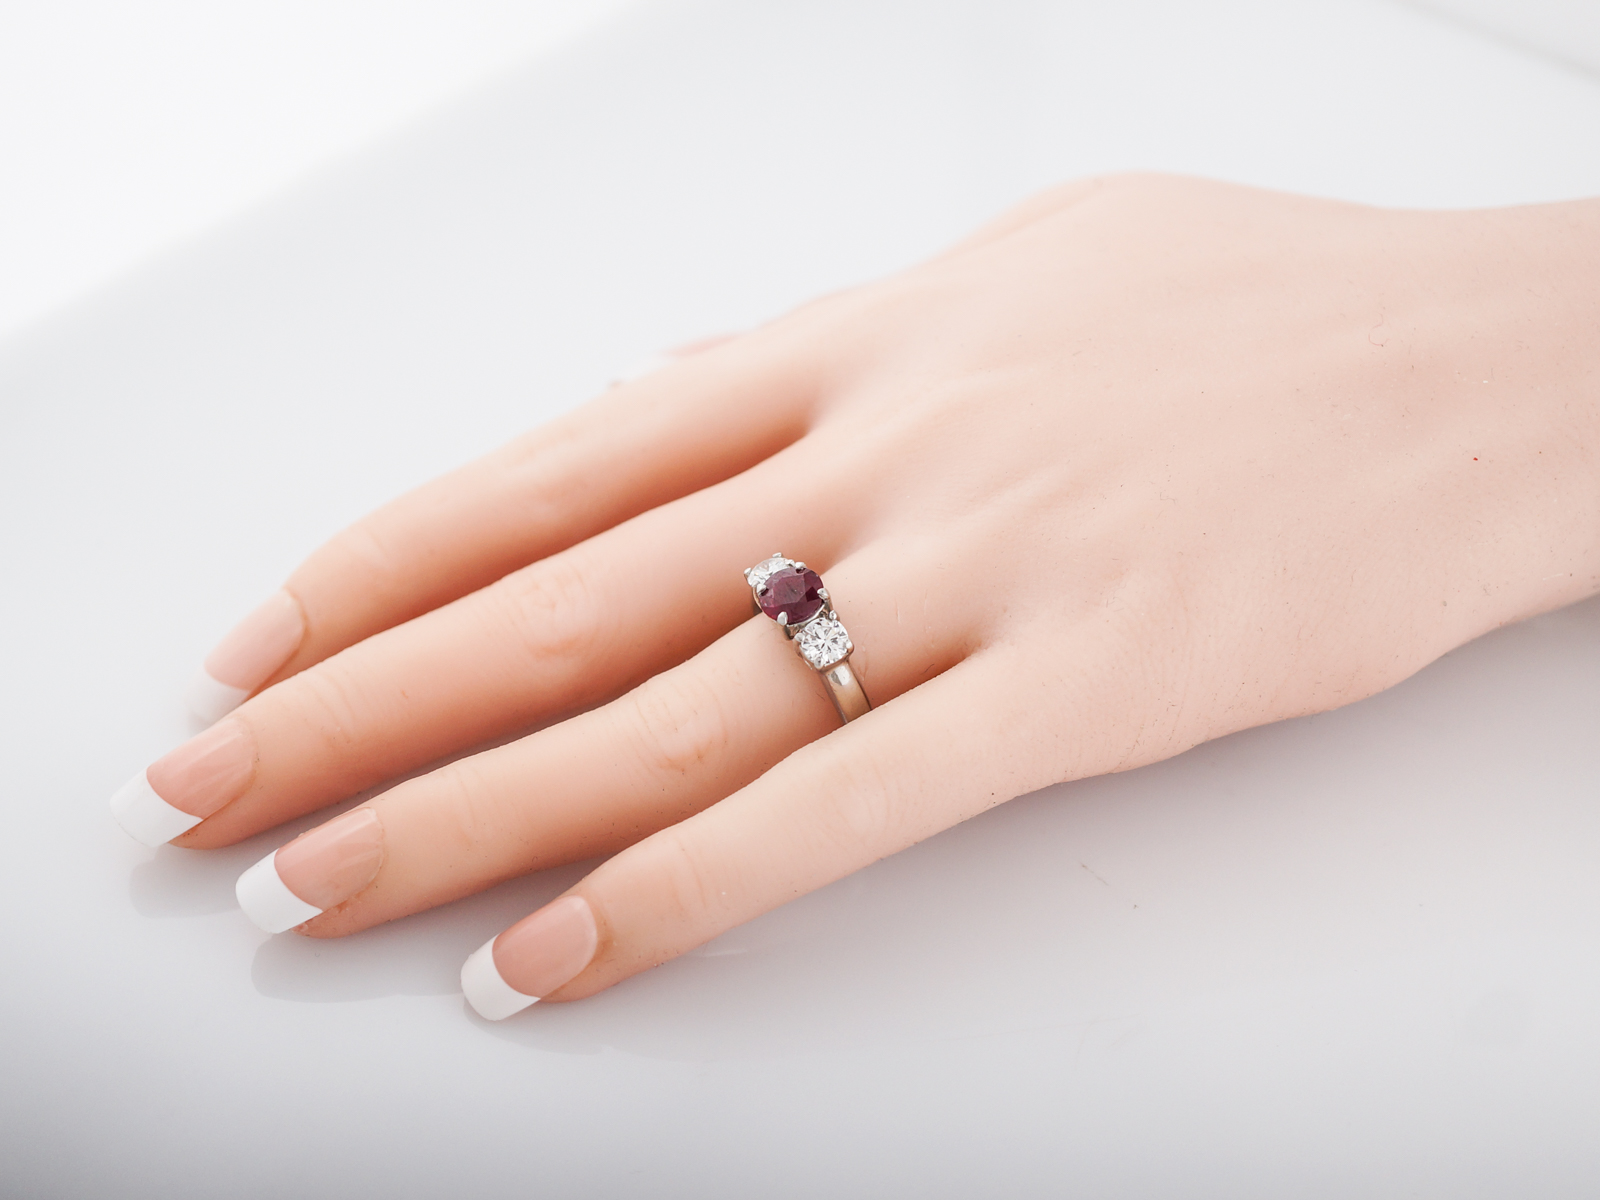 Engagement Ring Modern GIA 1.25 Round Cut Ruby in Platinum